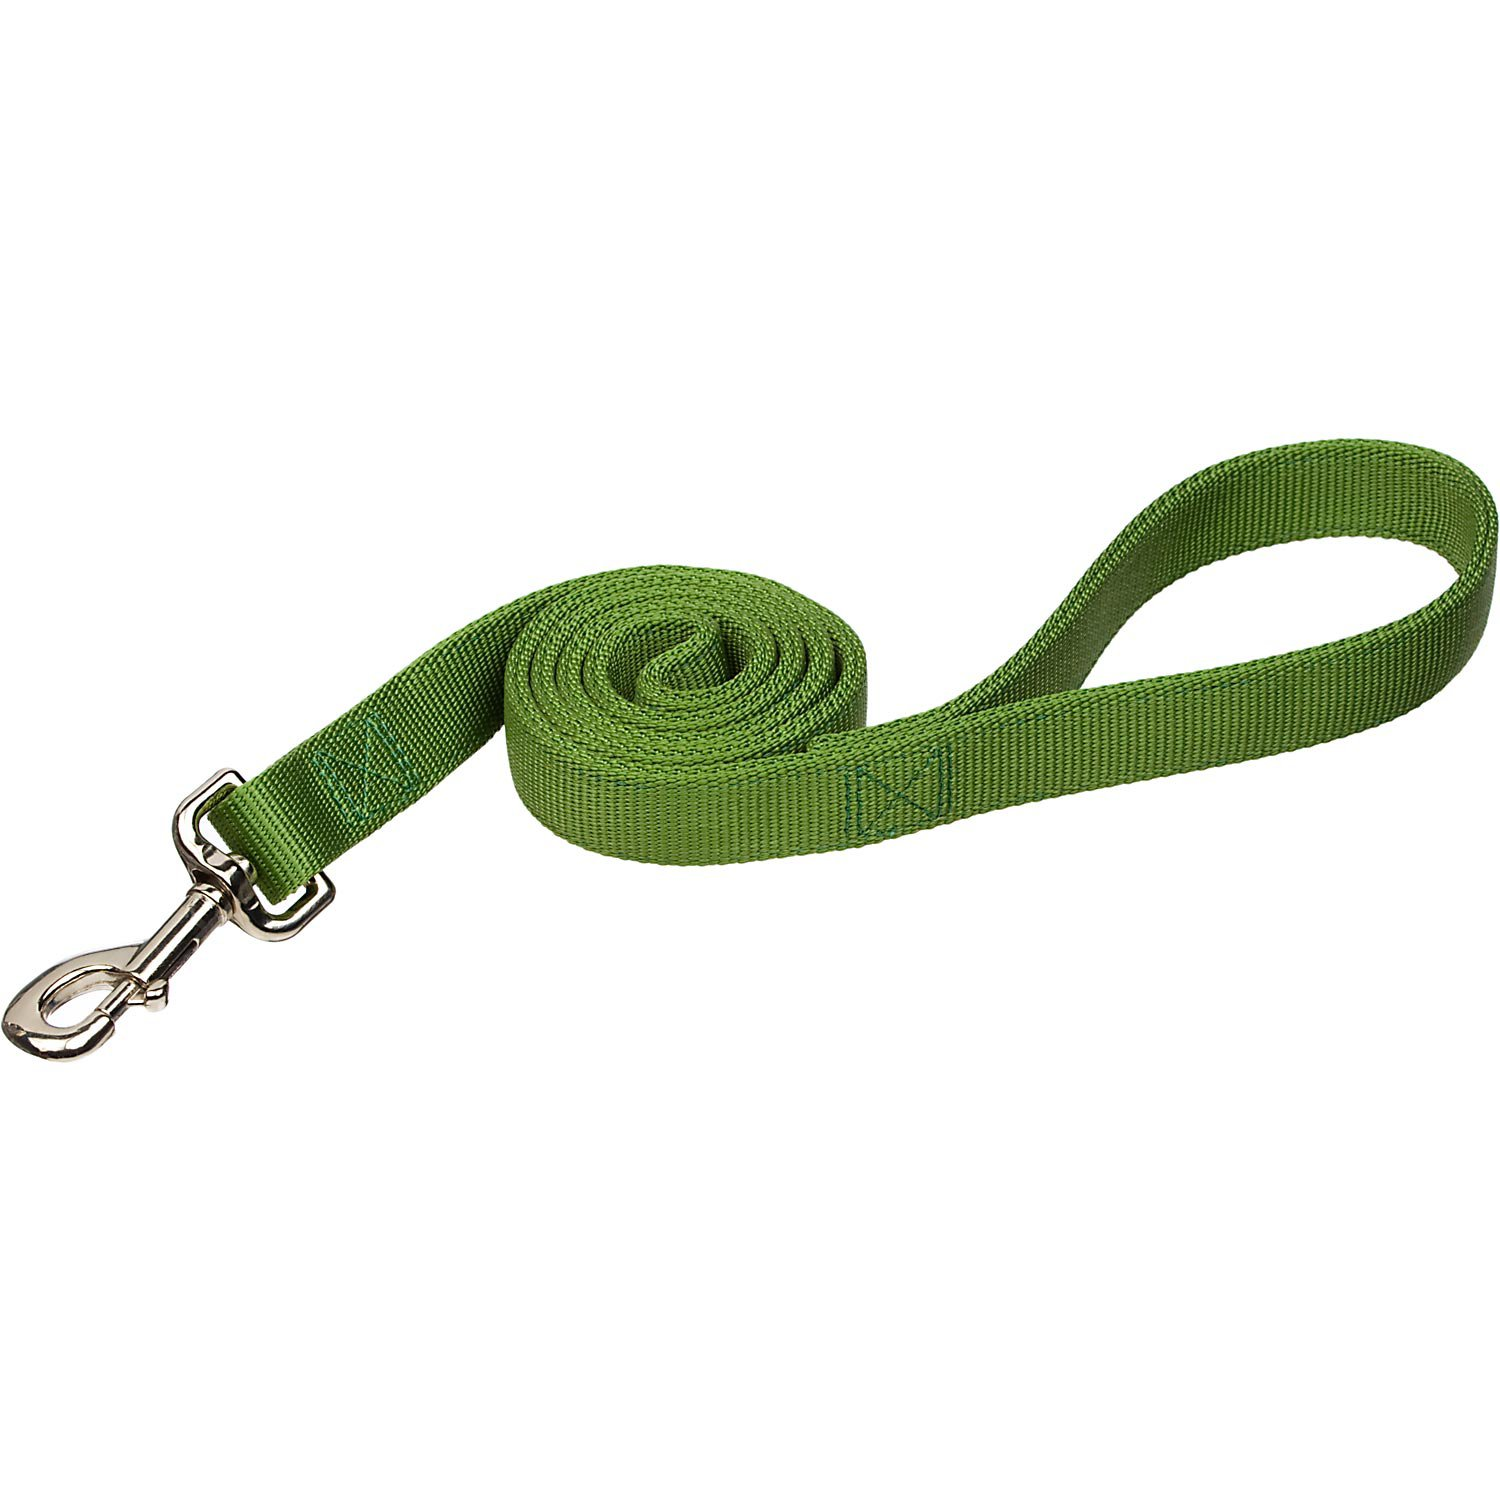 Coastal Pet Double Ply Nylon Personalized Dog Leash in Palm Green